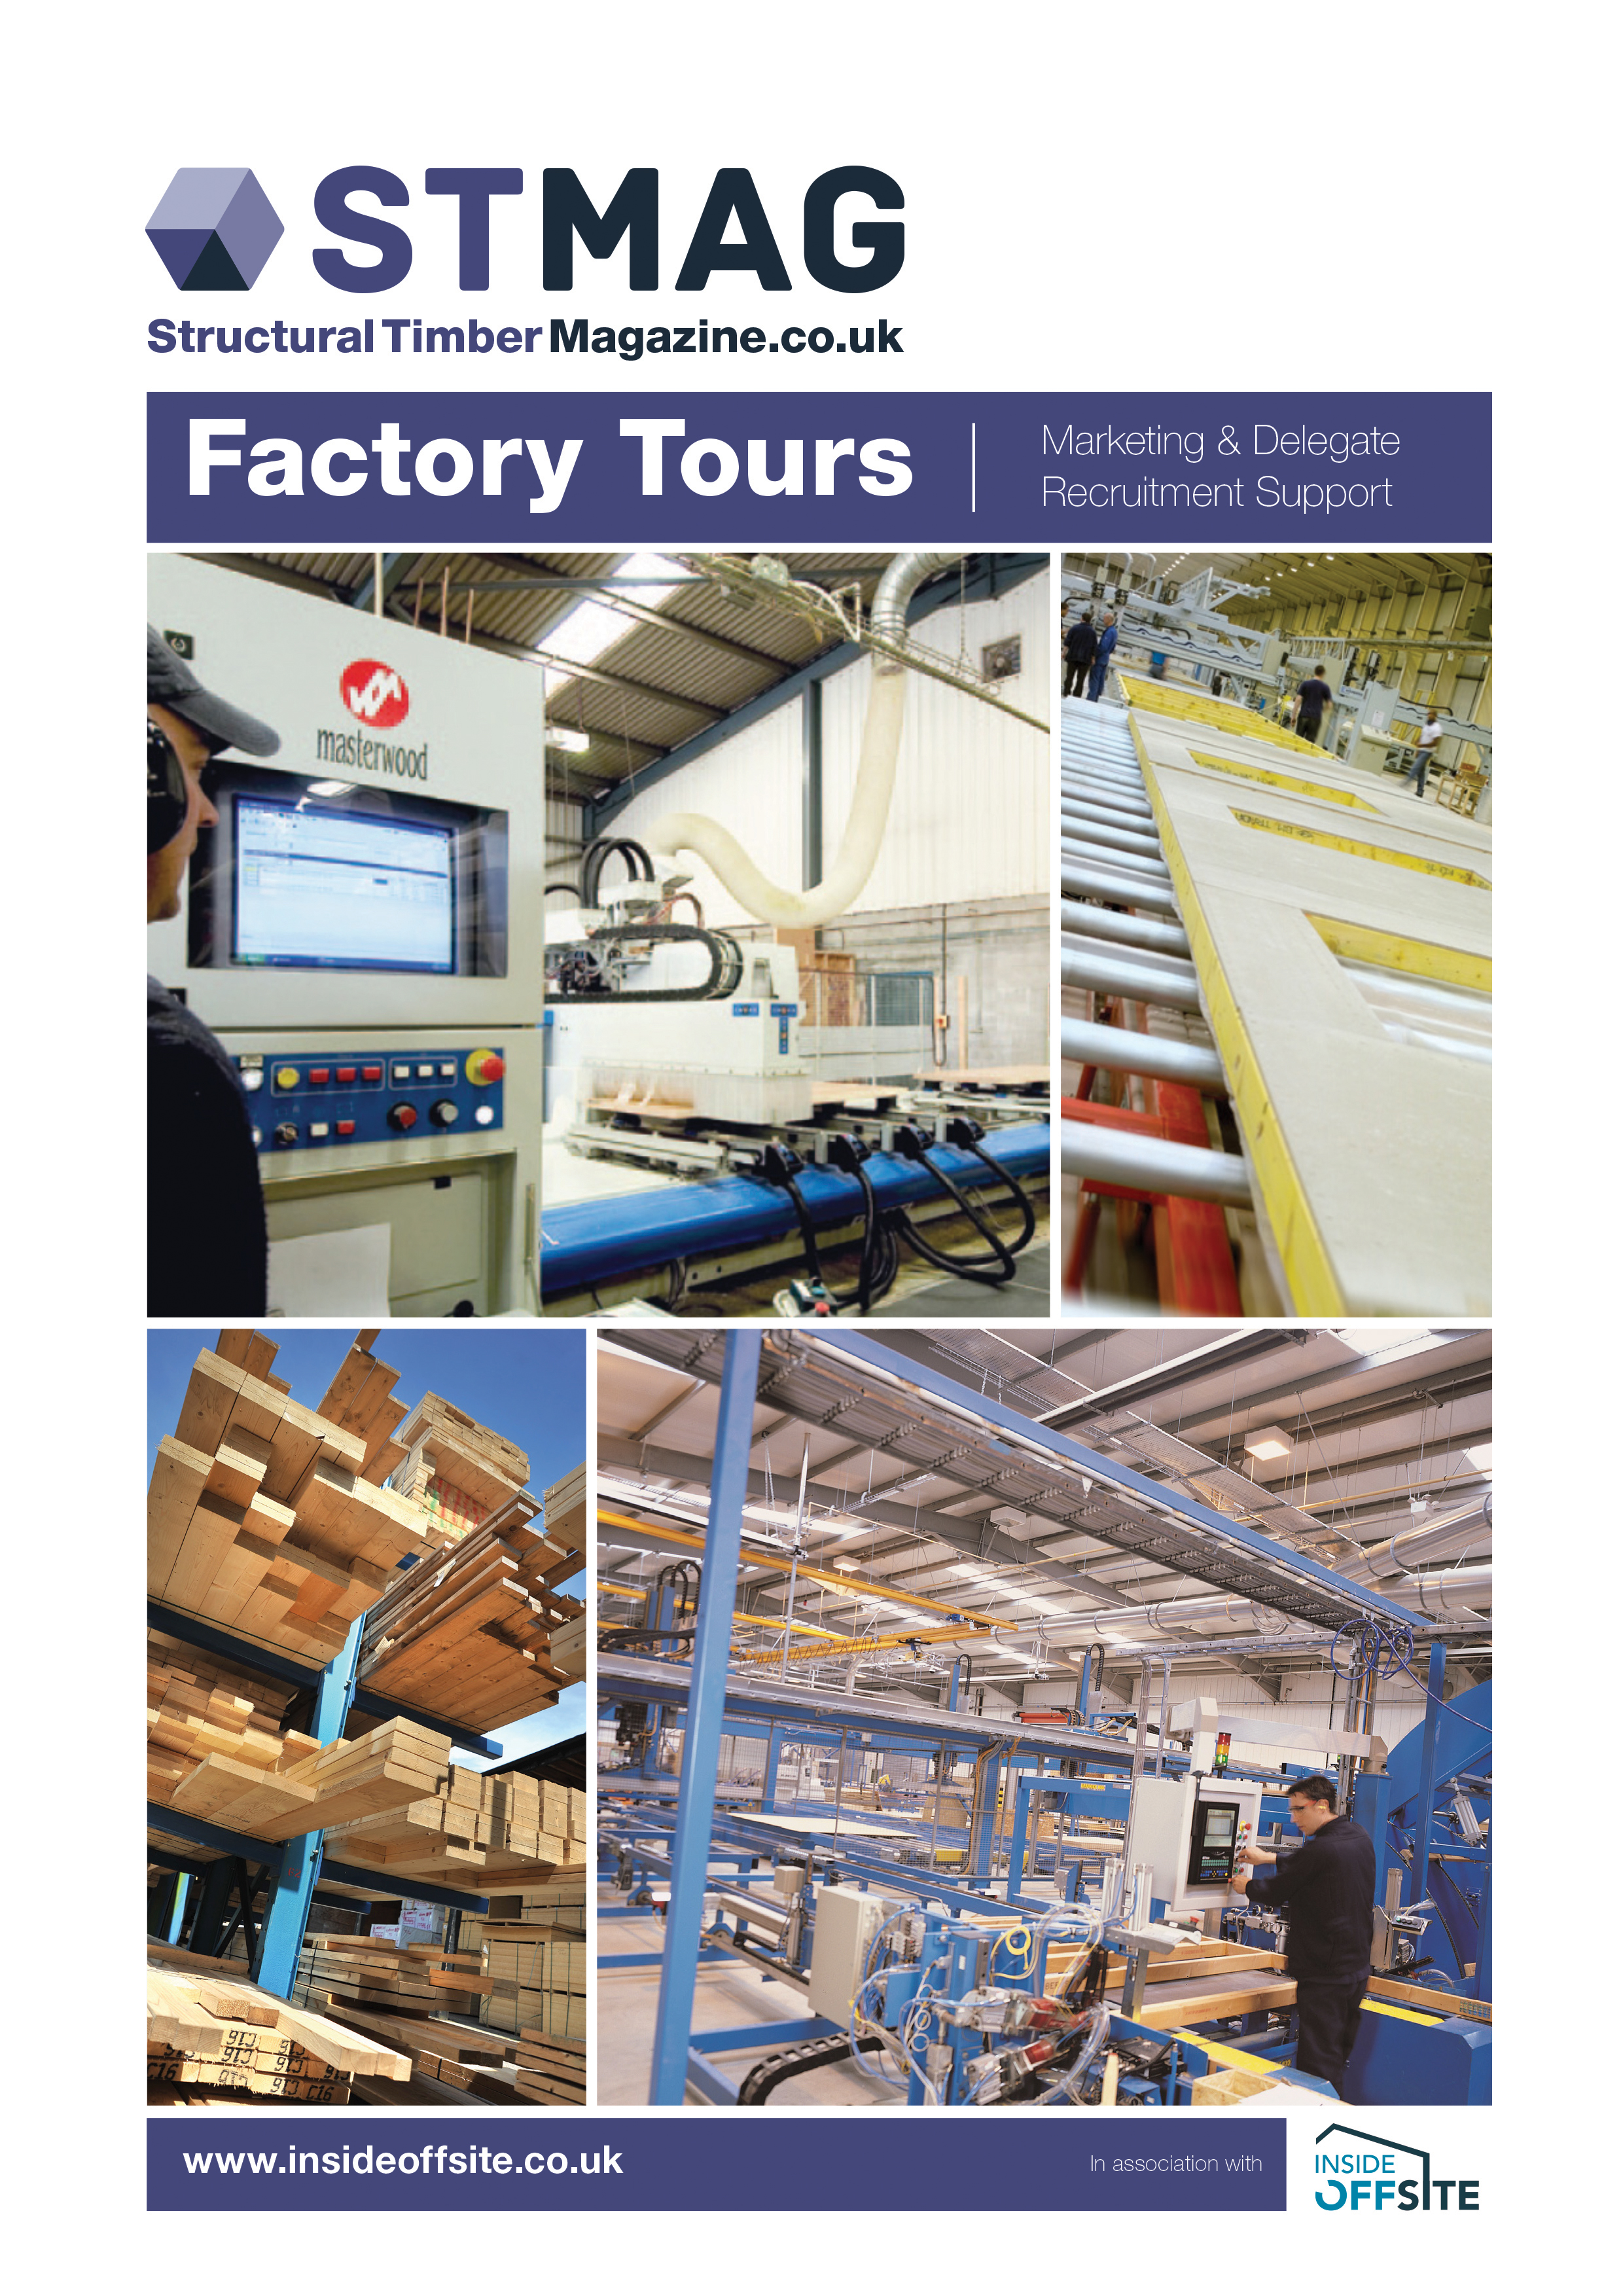 ST_Mag_4pp_Factory_Tours_Cover